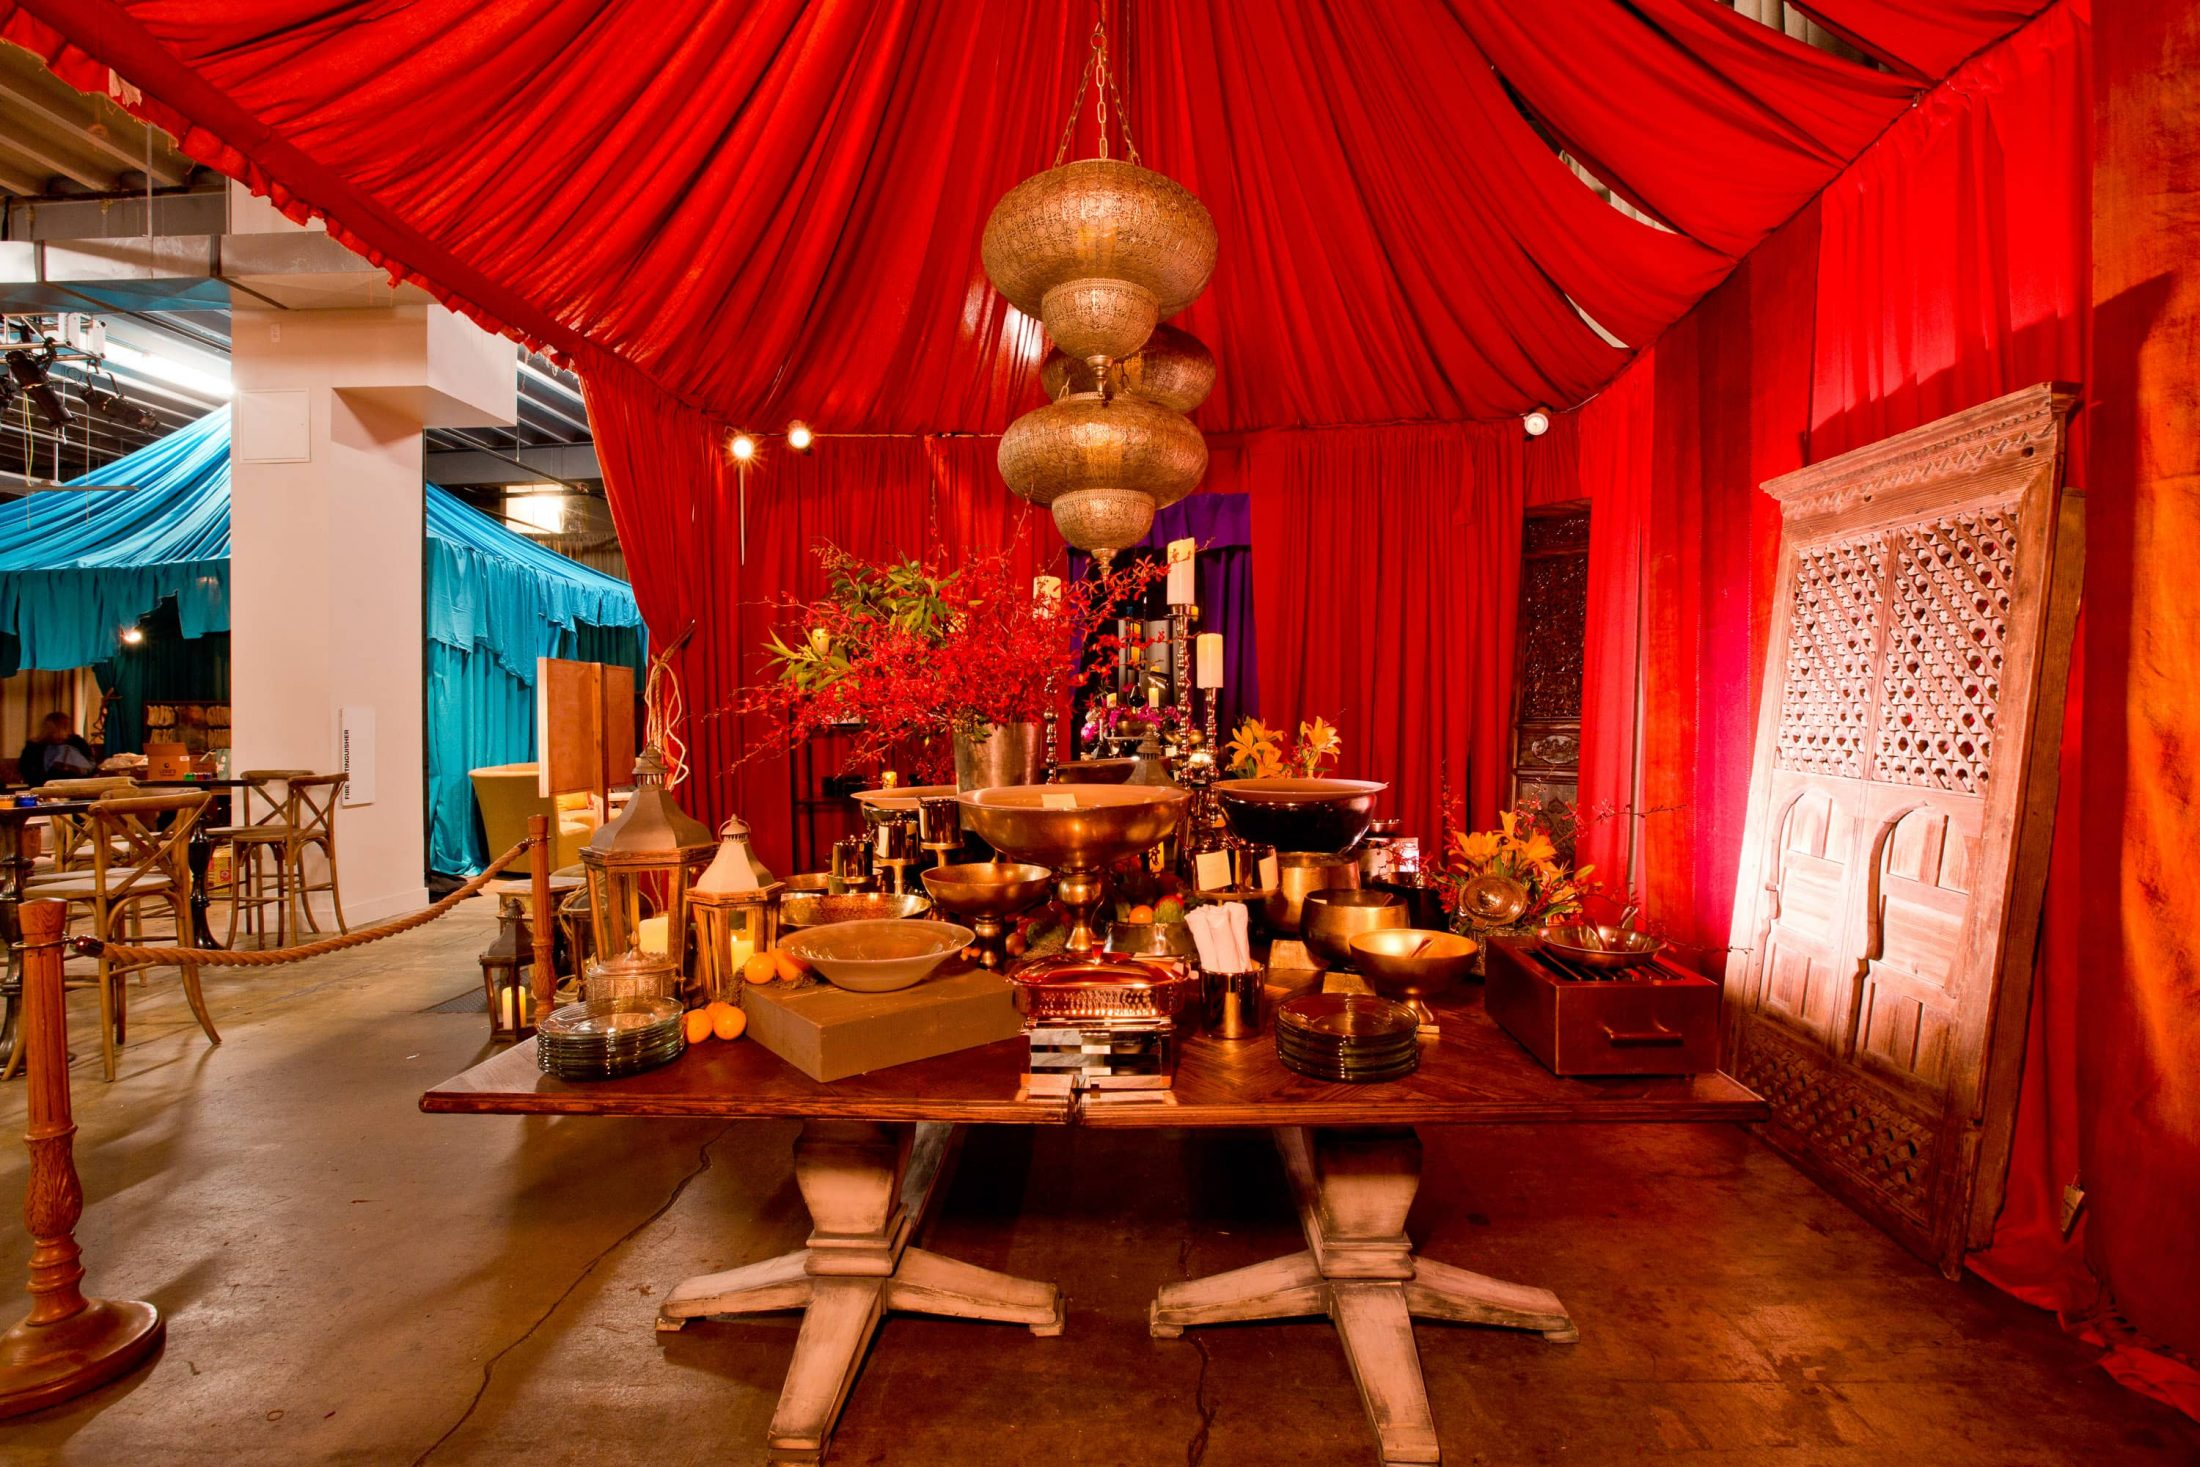 Middle Eastern souk-inspired decor at this Washington DC bat mitzvah | Photo by Luis Zepeda